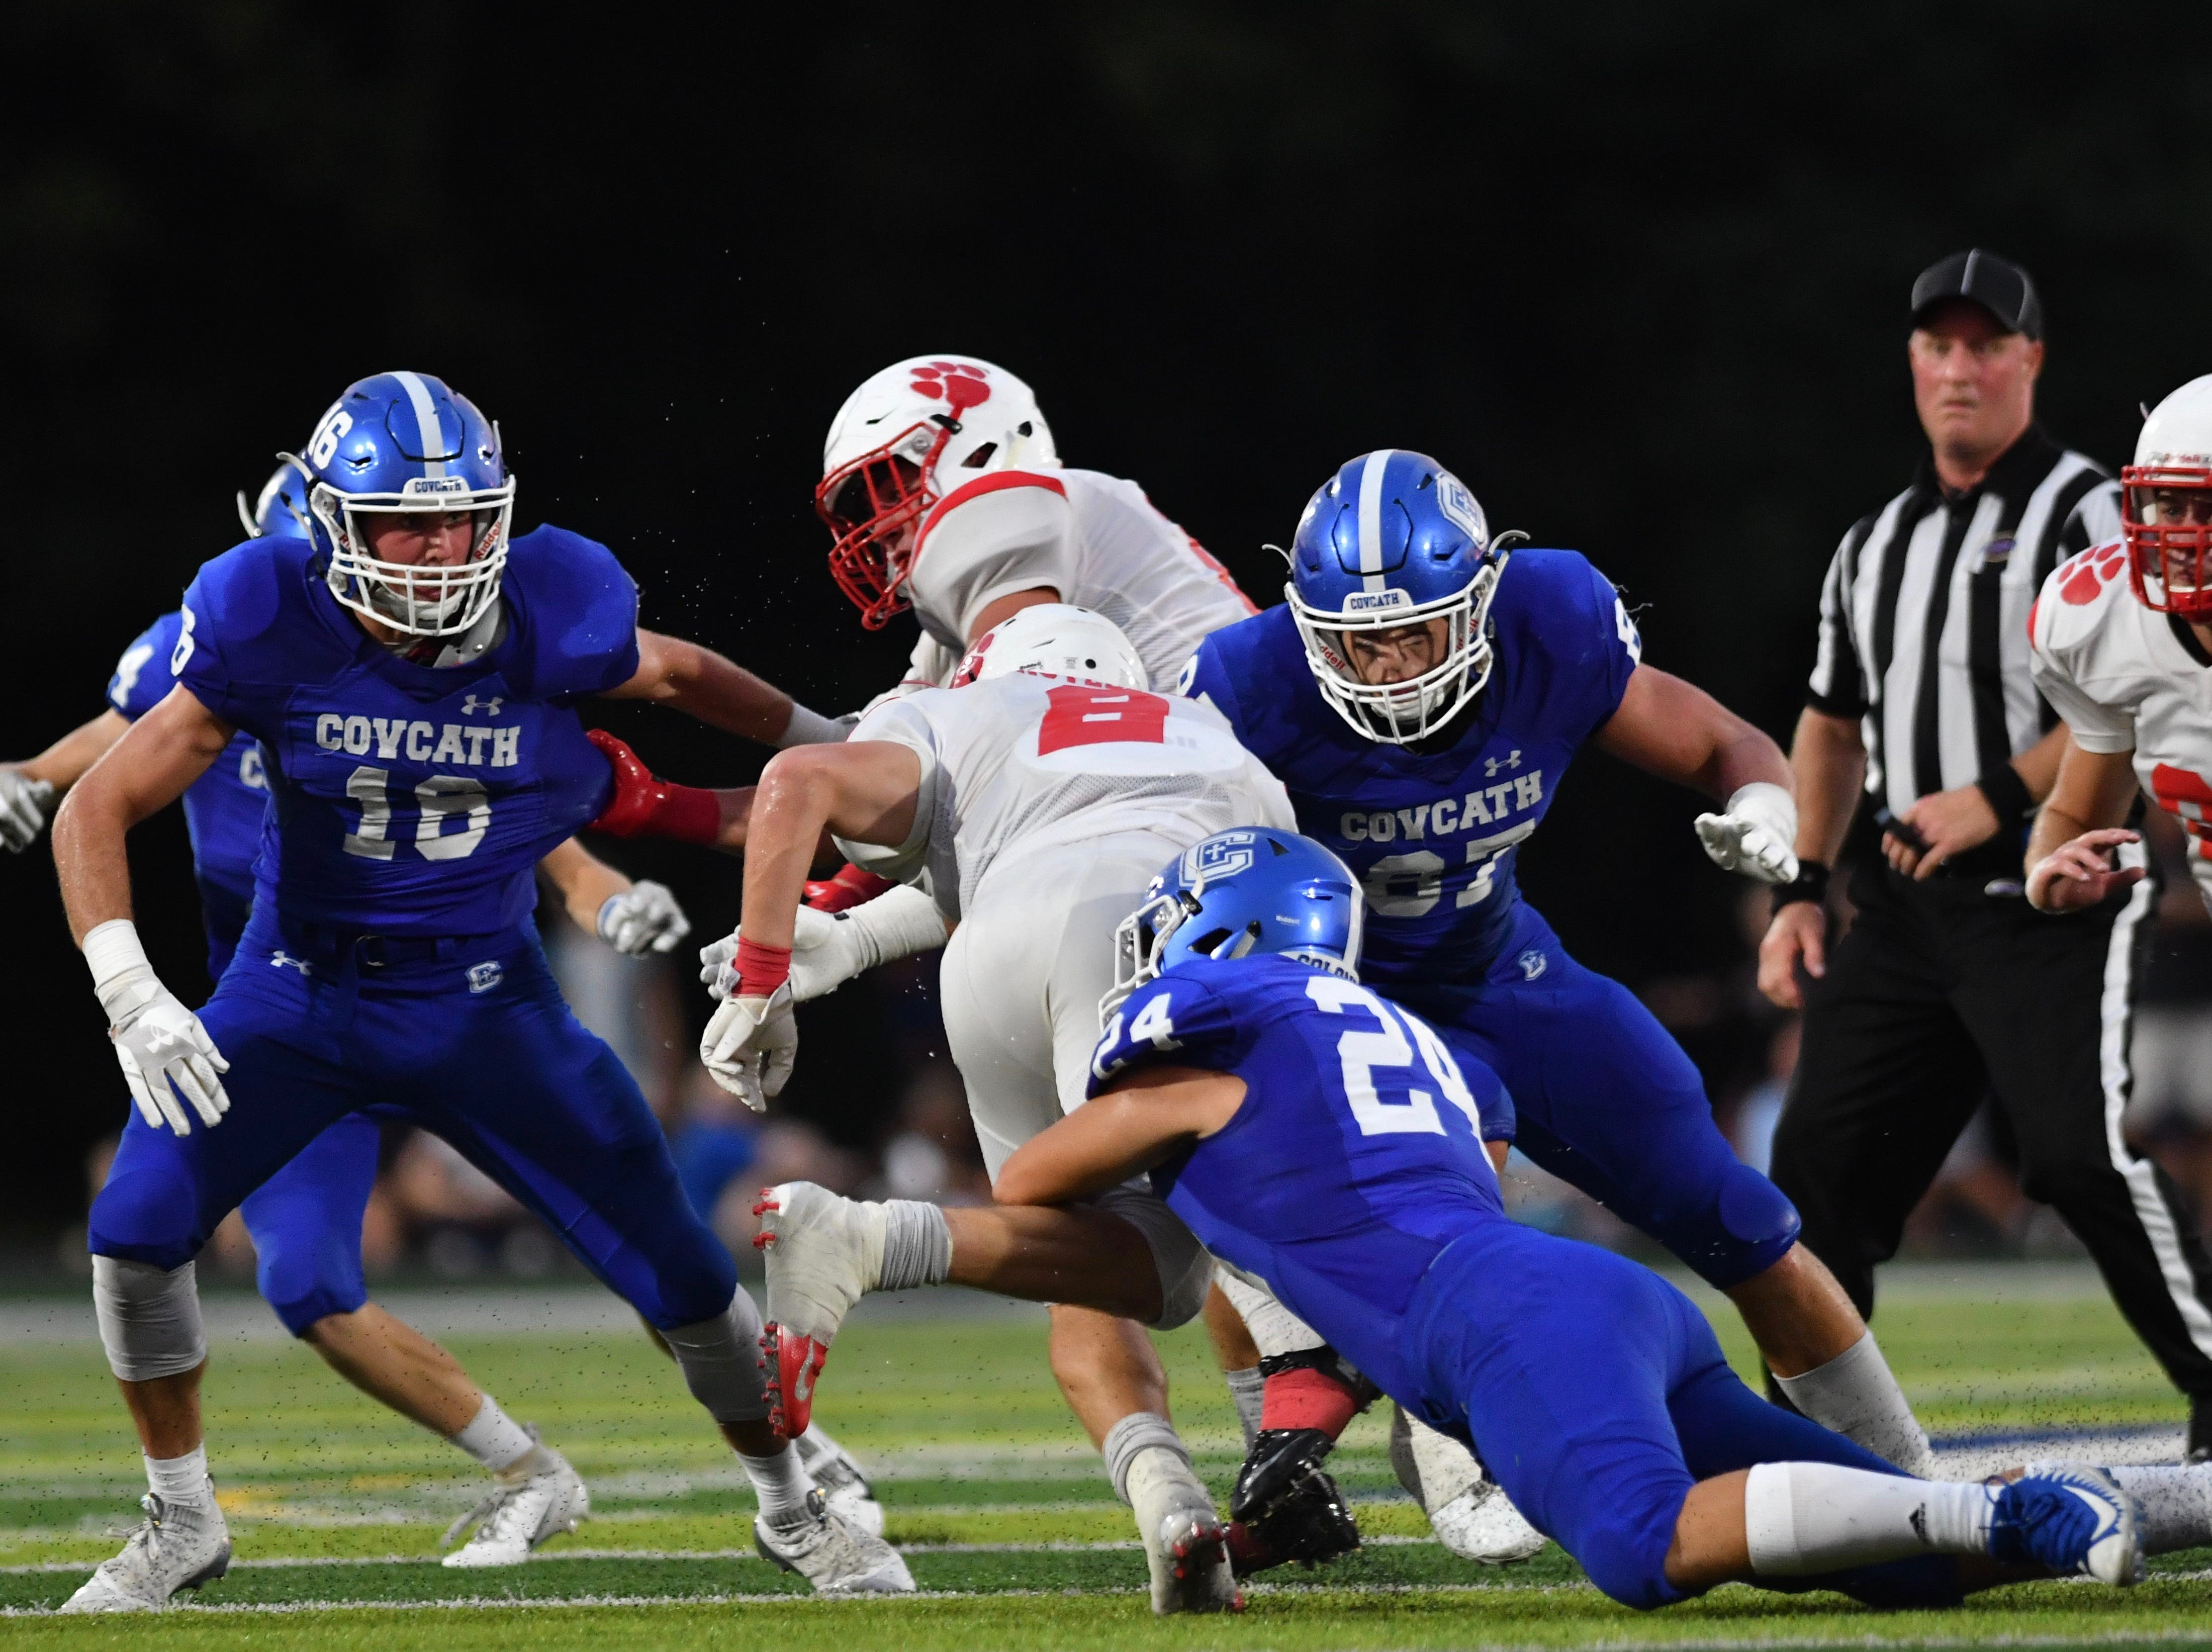 Beechwood's Josh Derry is tackled by a swarm of Covington Catholic defenders including Daniel Felix and Michael Mayer Friday, Sept. 14, 2018.